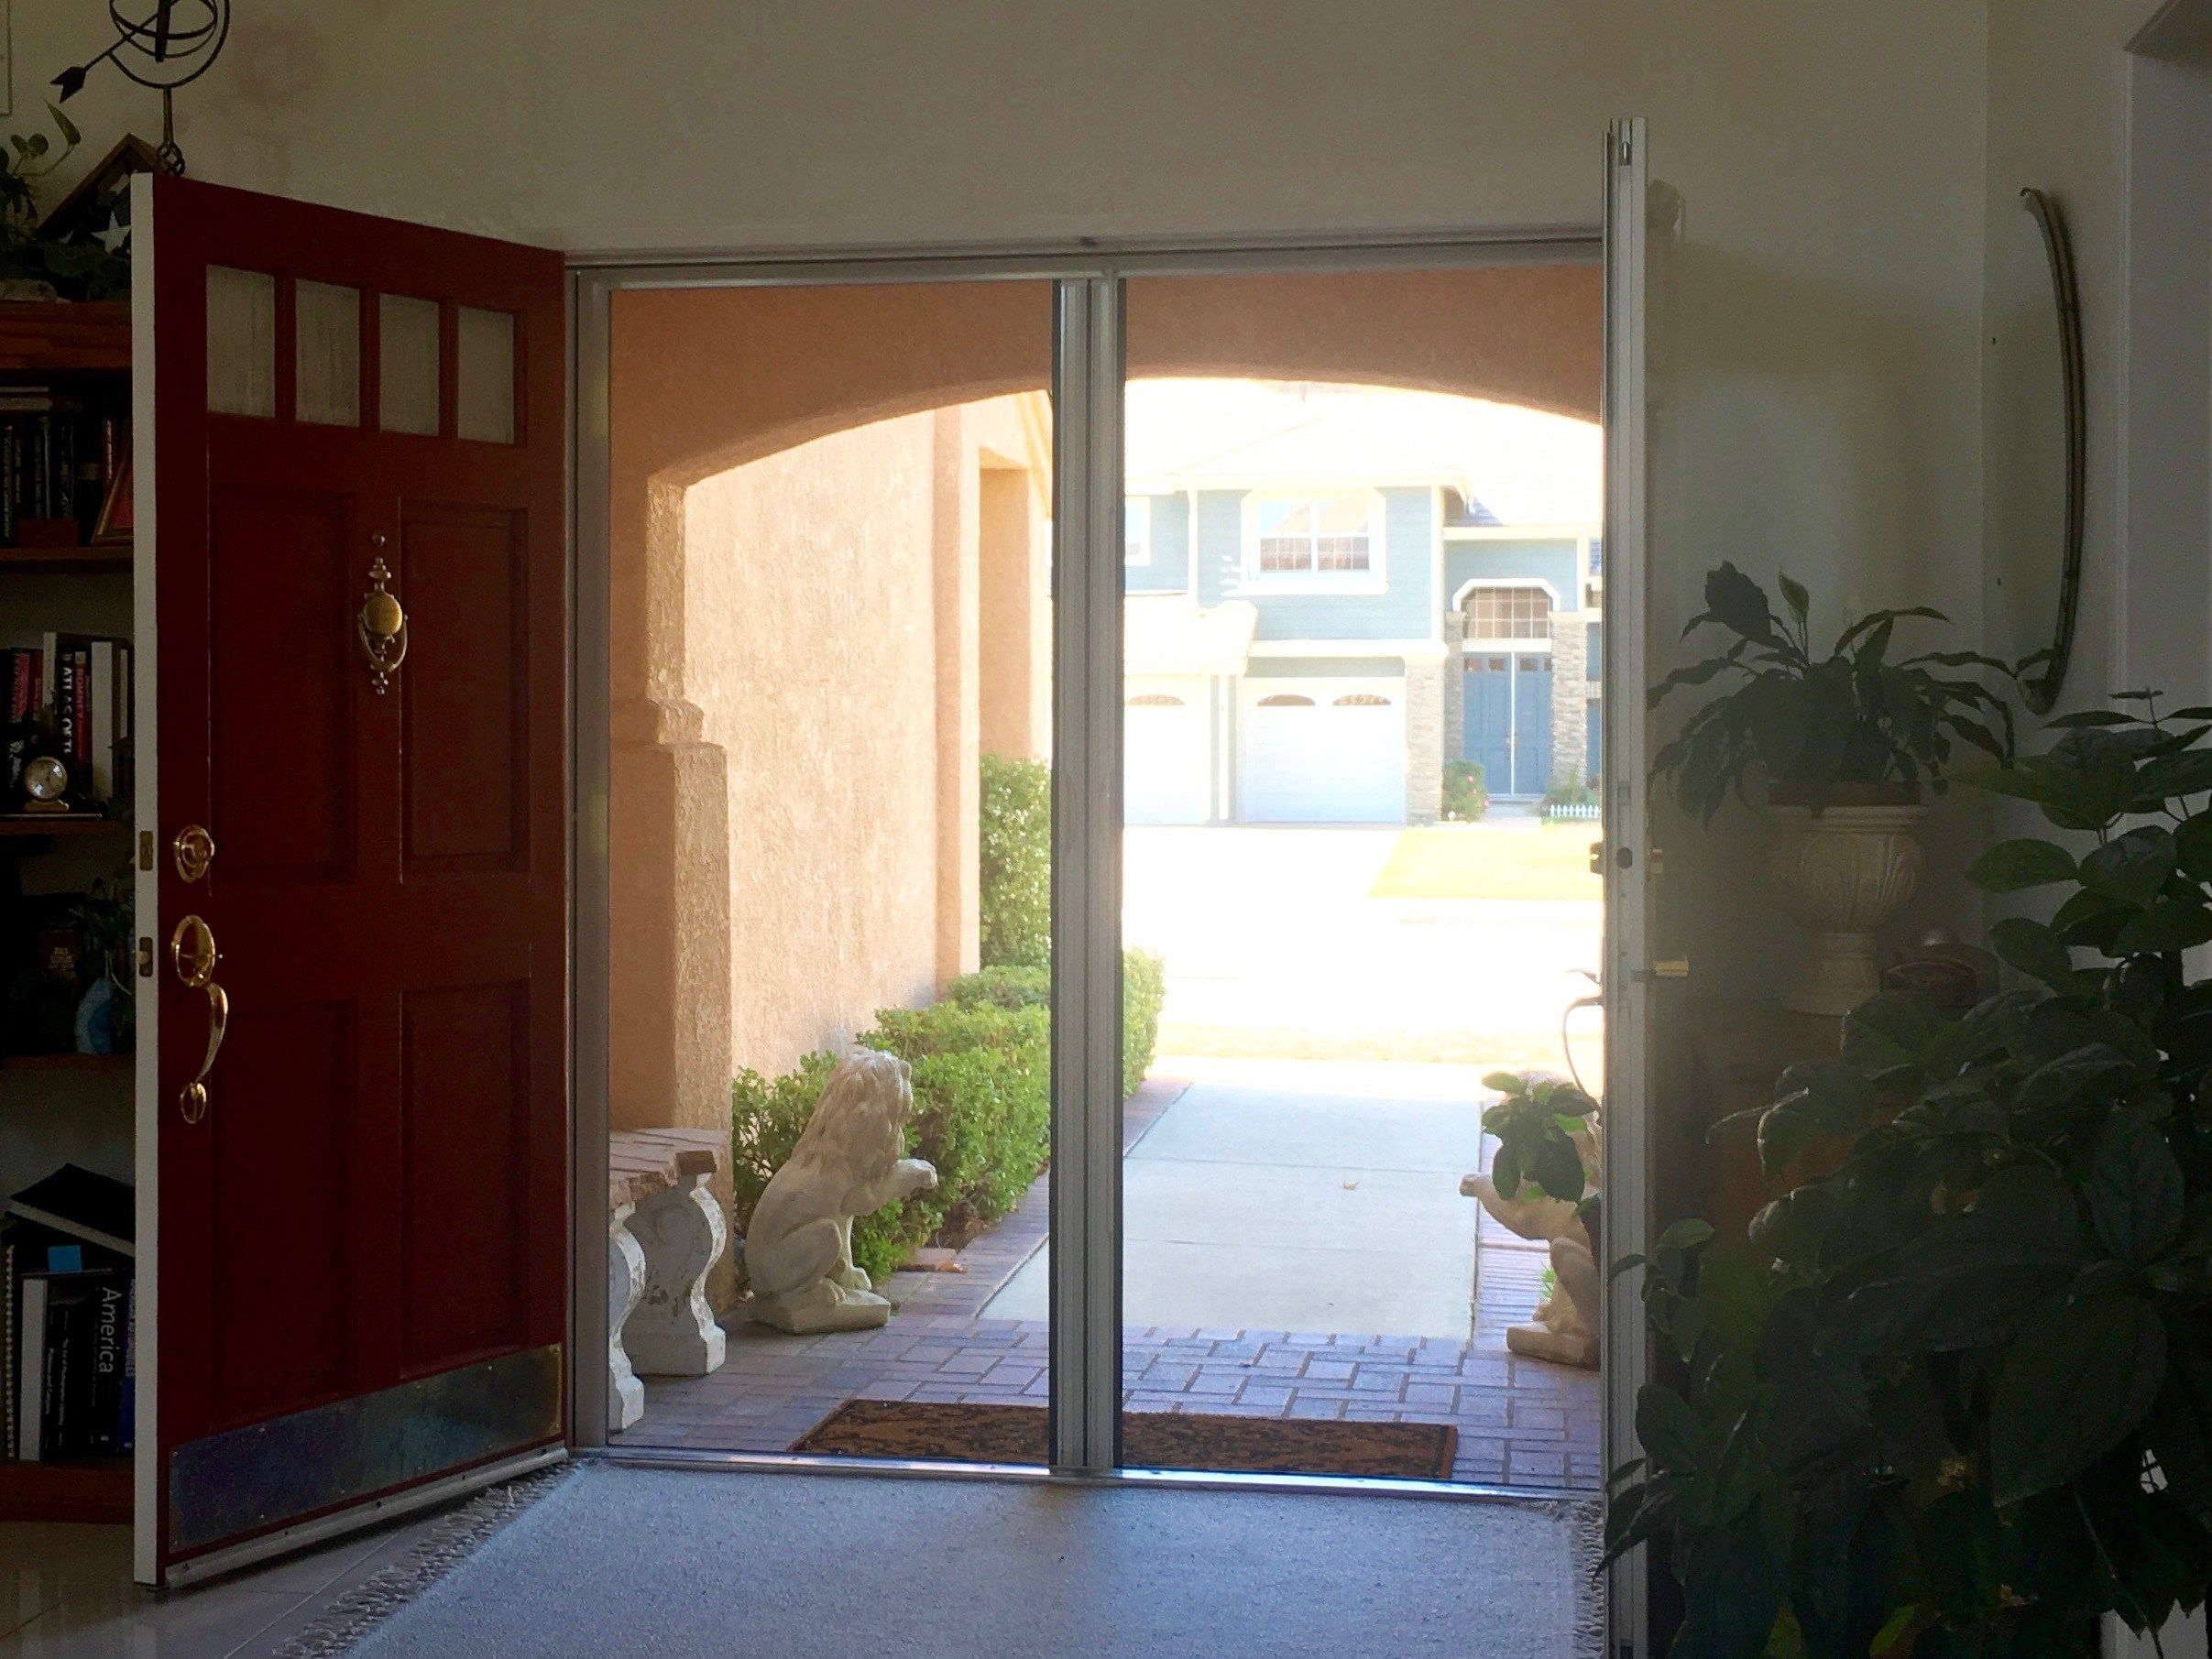 Let The Fresh Air In With Genius Retractable Screen Doors Distributed And Installed By Casco Industrie Retractable Screen Retractable Screen Door Screen Door